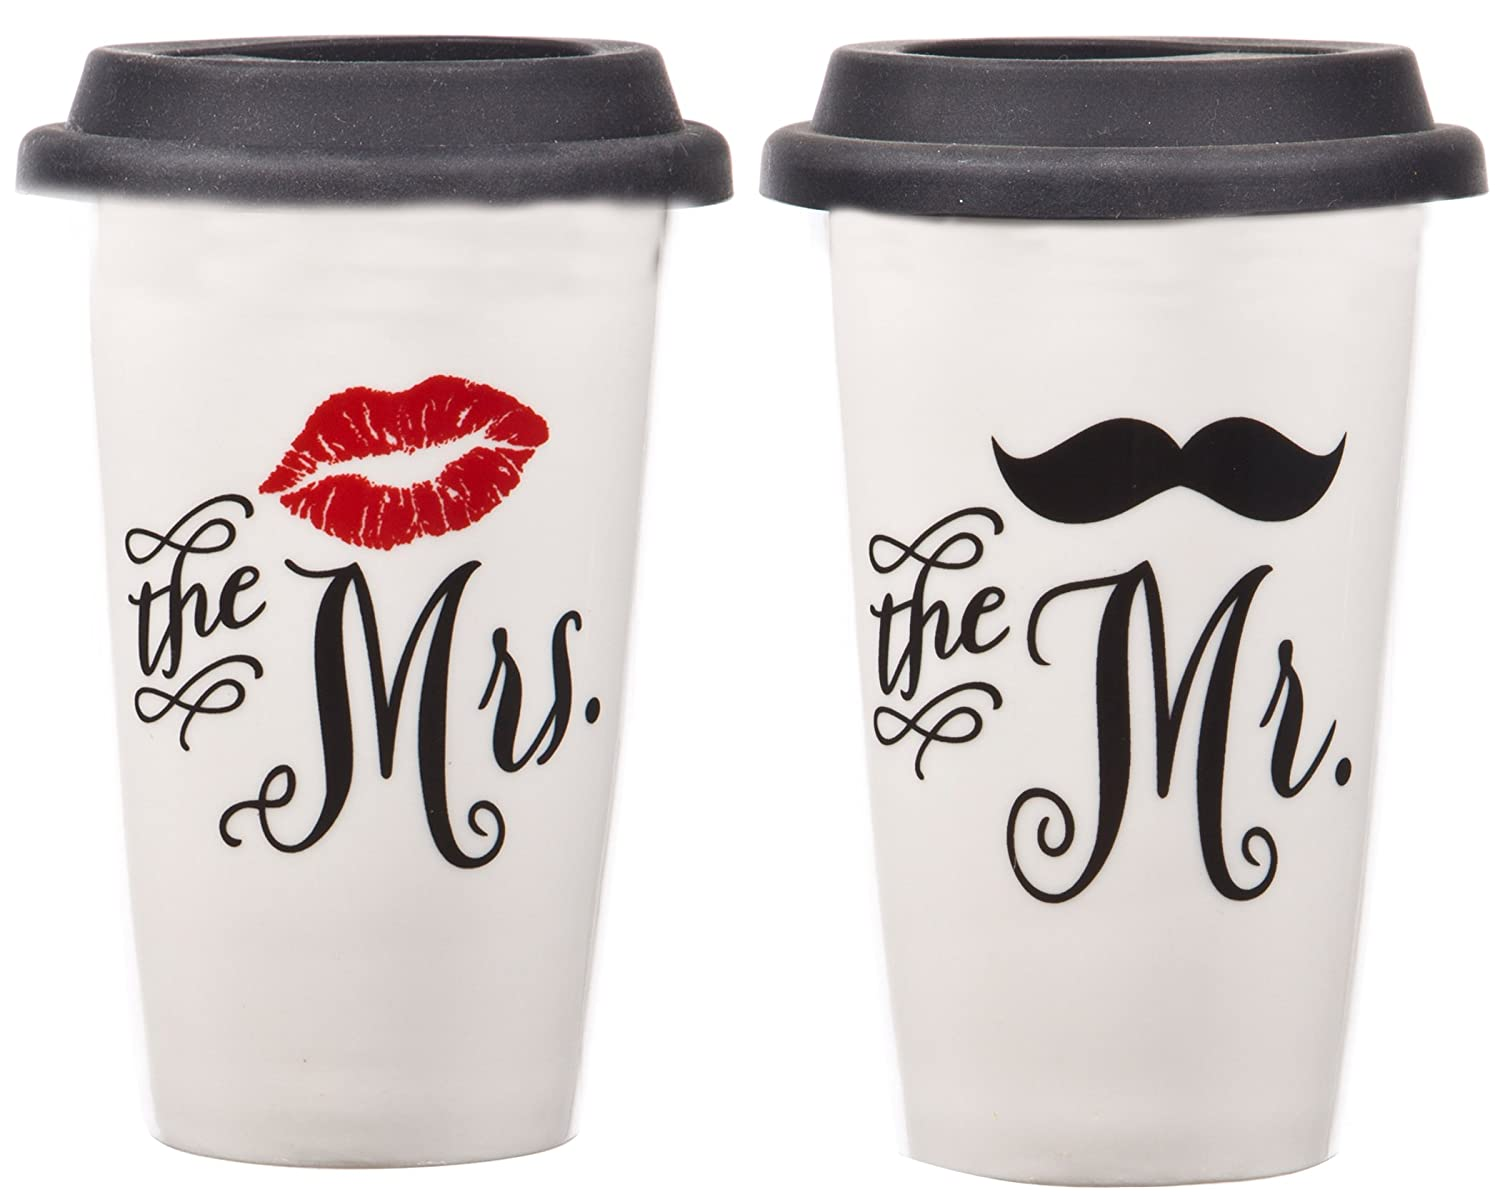 ... register for. Either way, check out 8 Wedding Gifts For The Couple